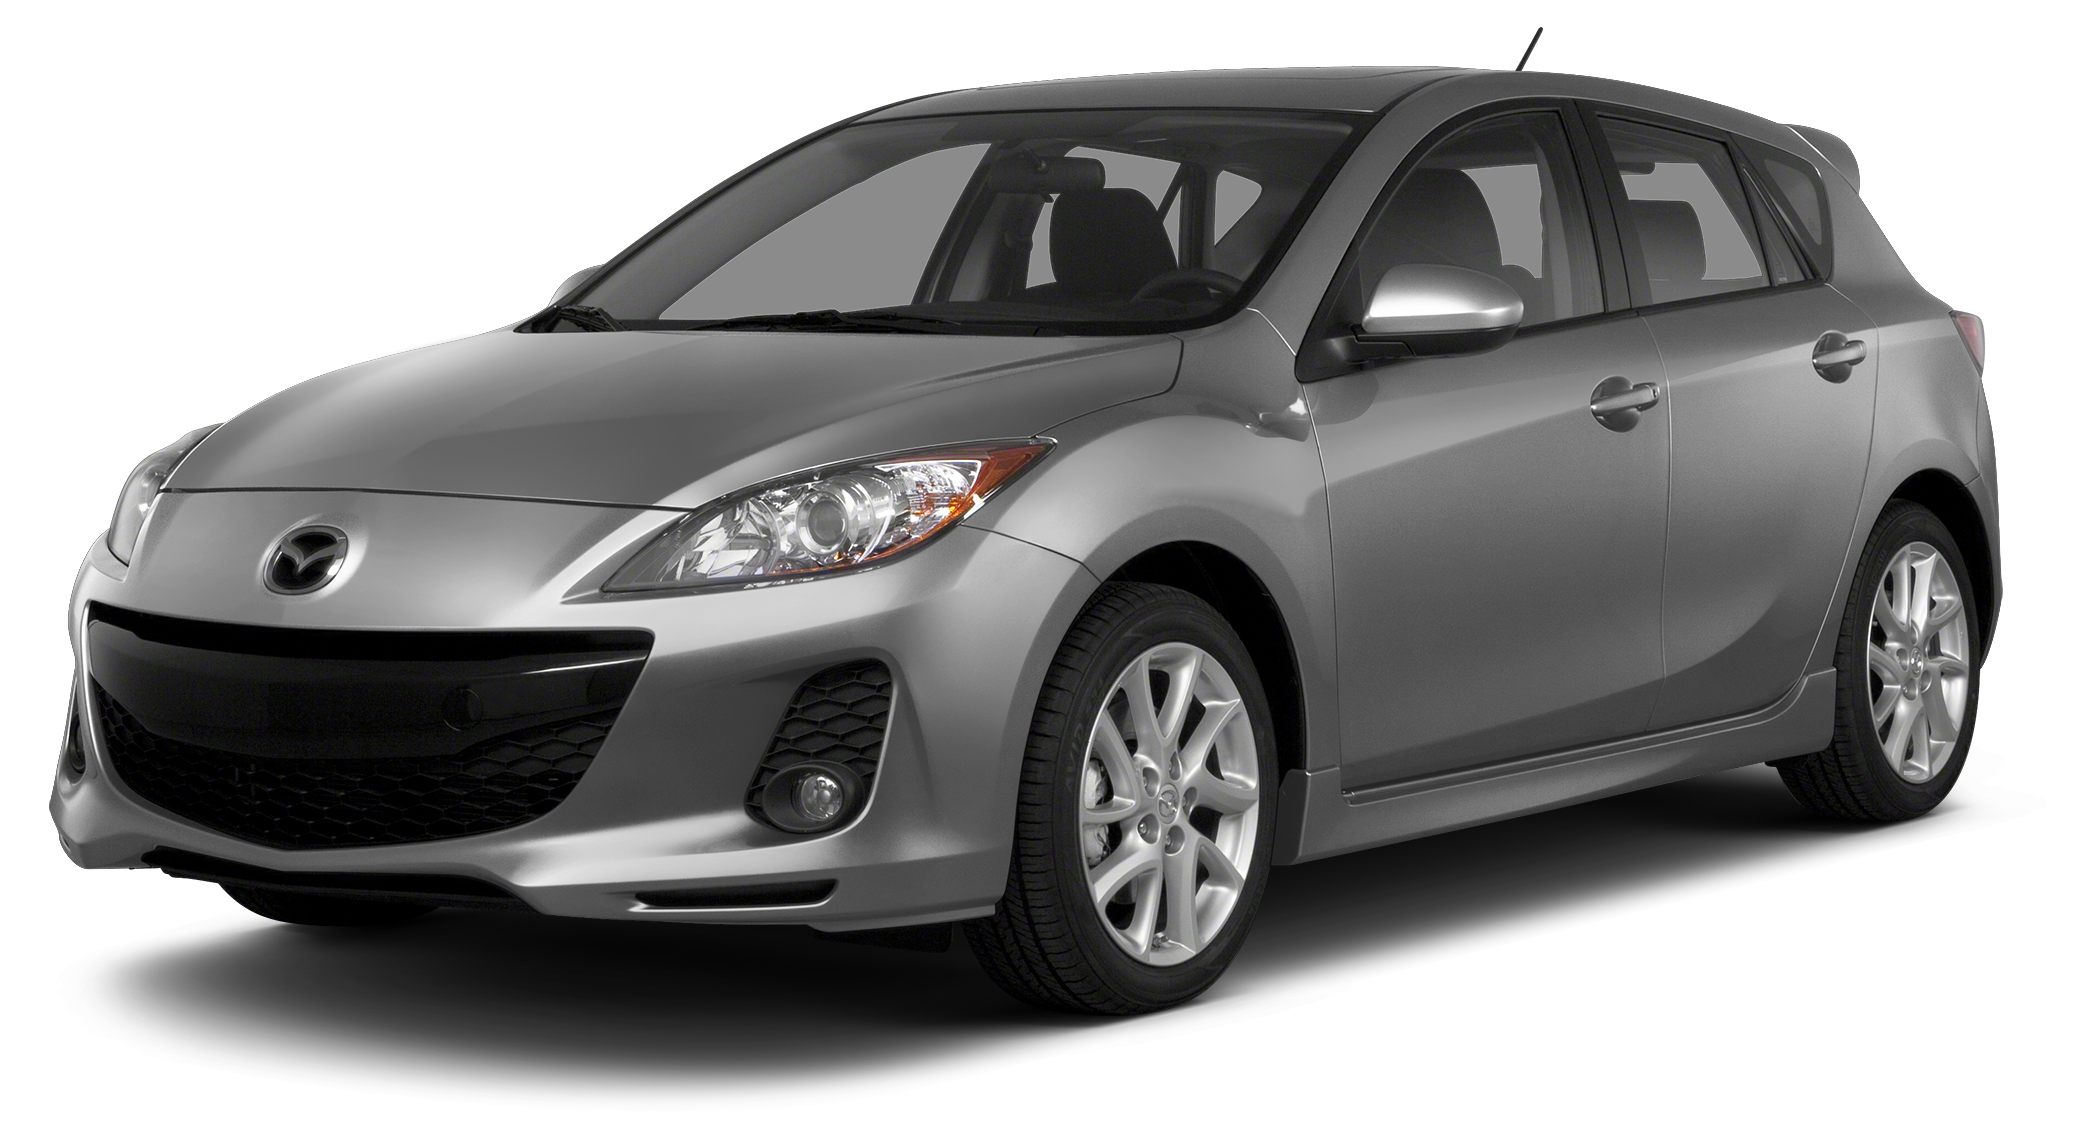 2013 Mazda MAZDA3 i Touring This 2013 Mazda 3 i Touring is a Mazda Certified Pre-Owned Vehicle Th